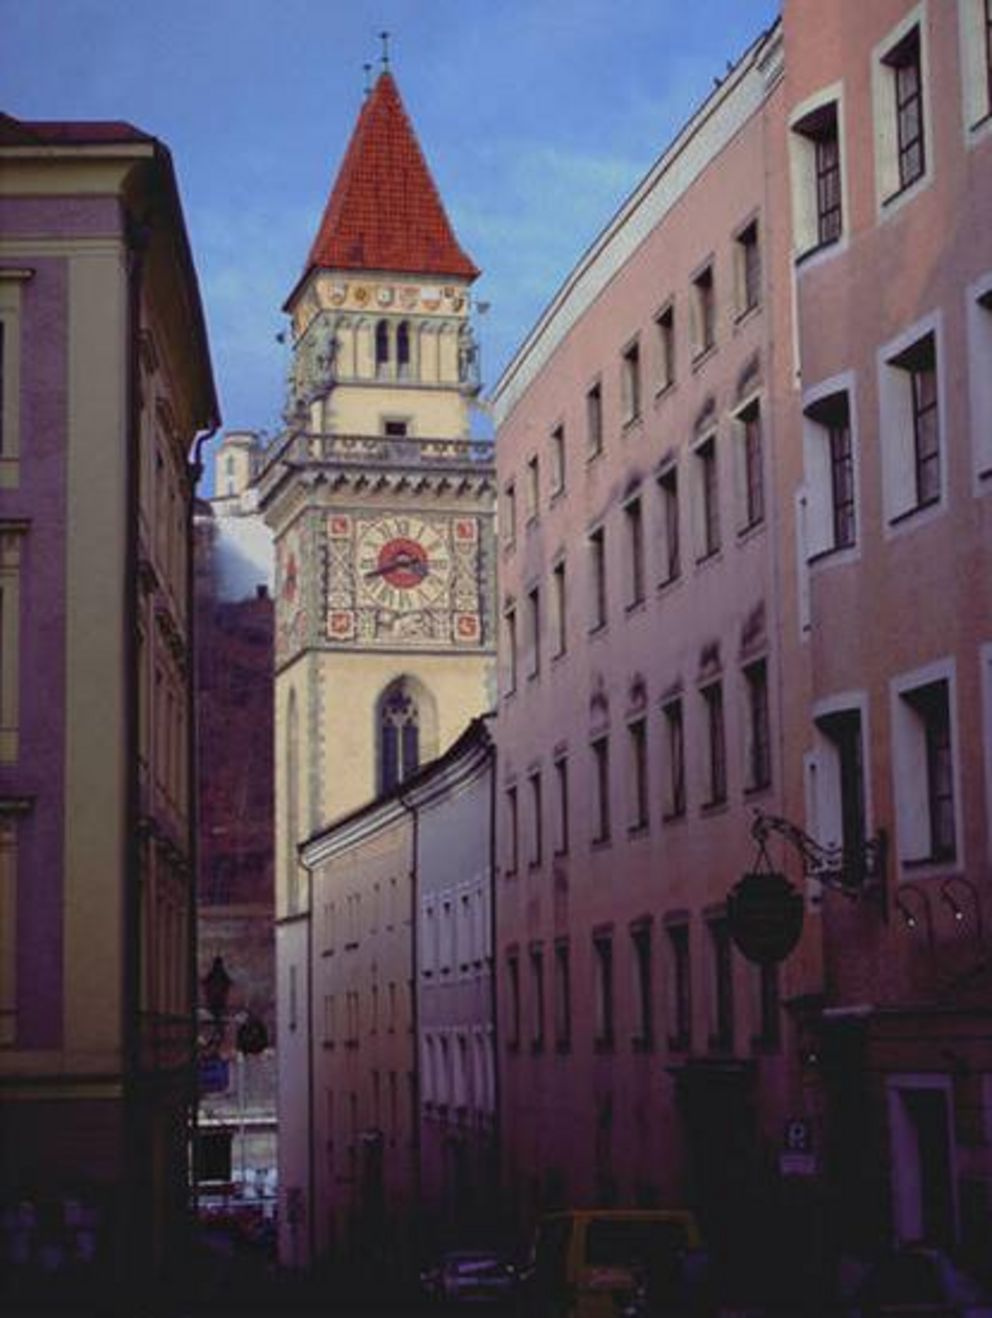 Alley leading to Passau city hall